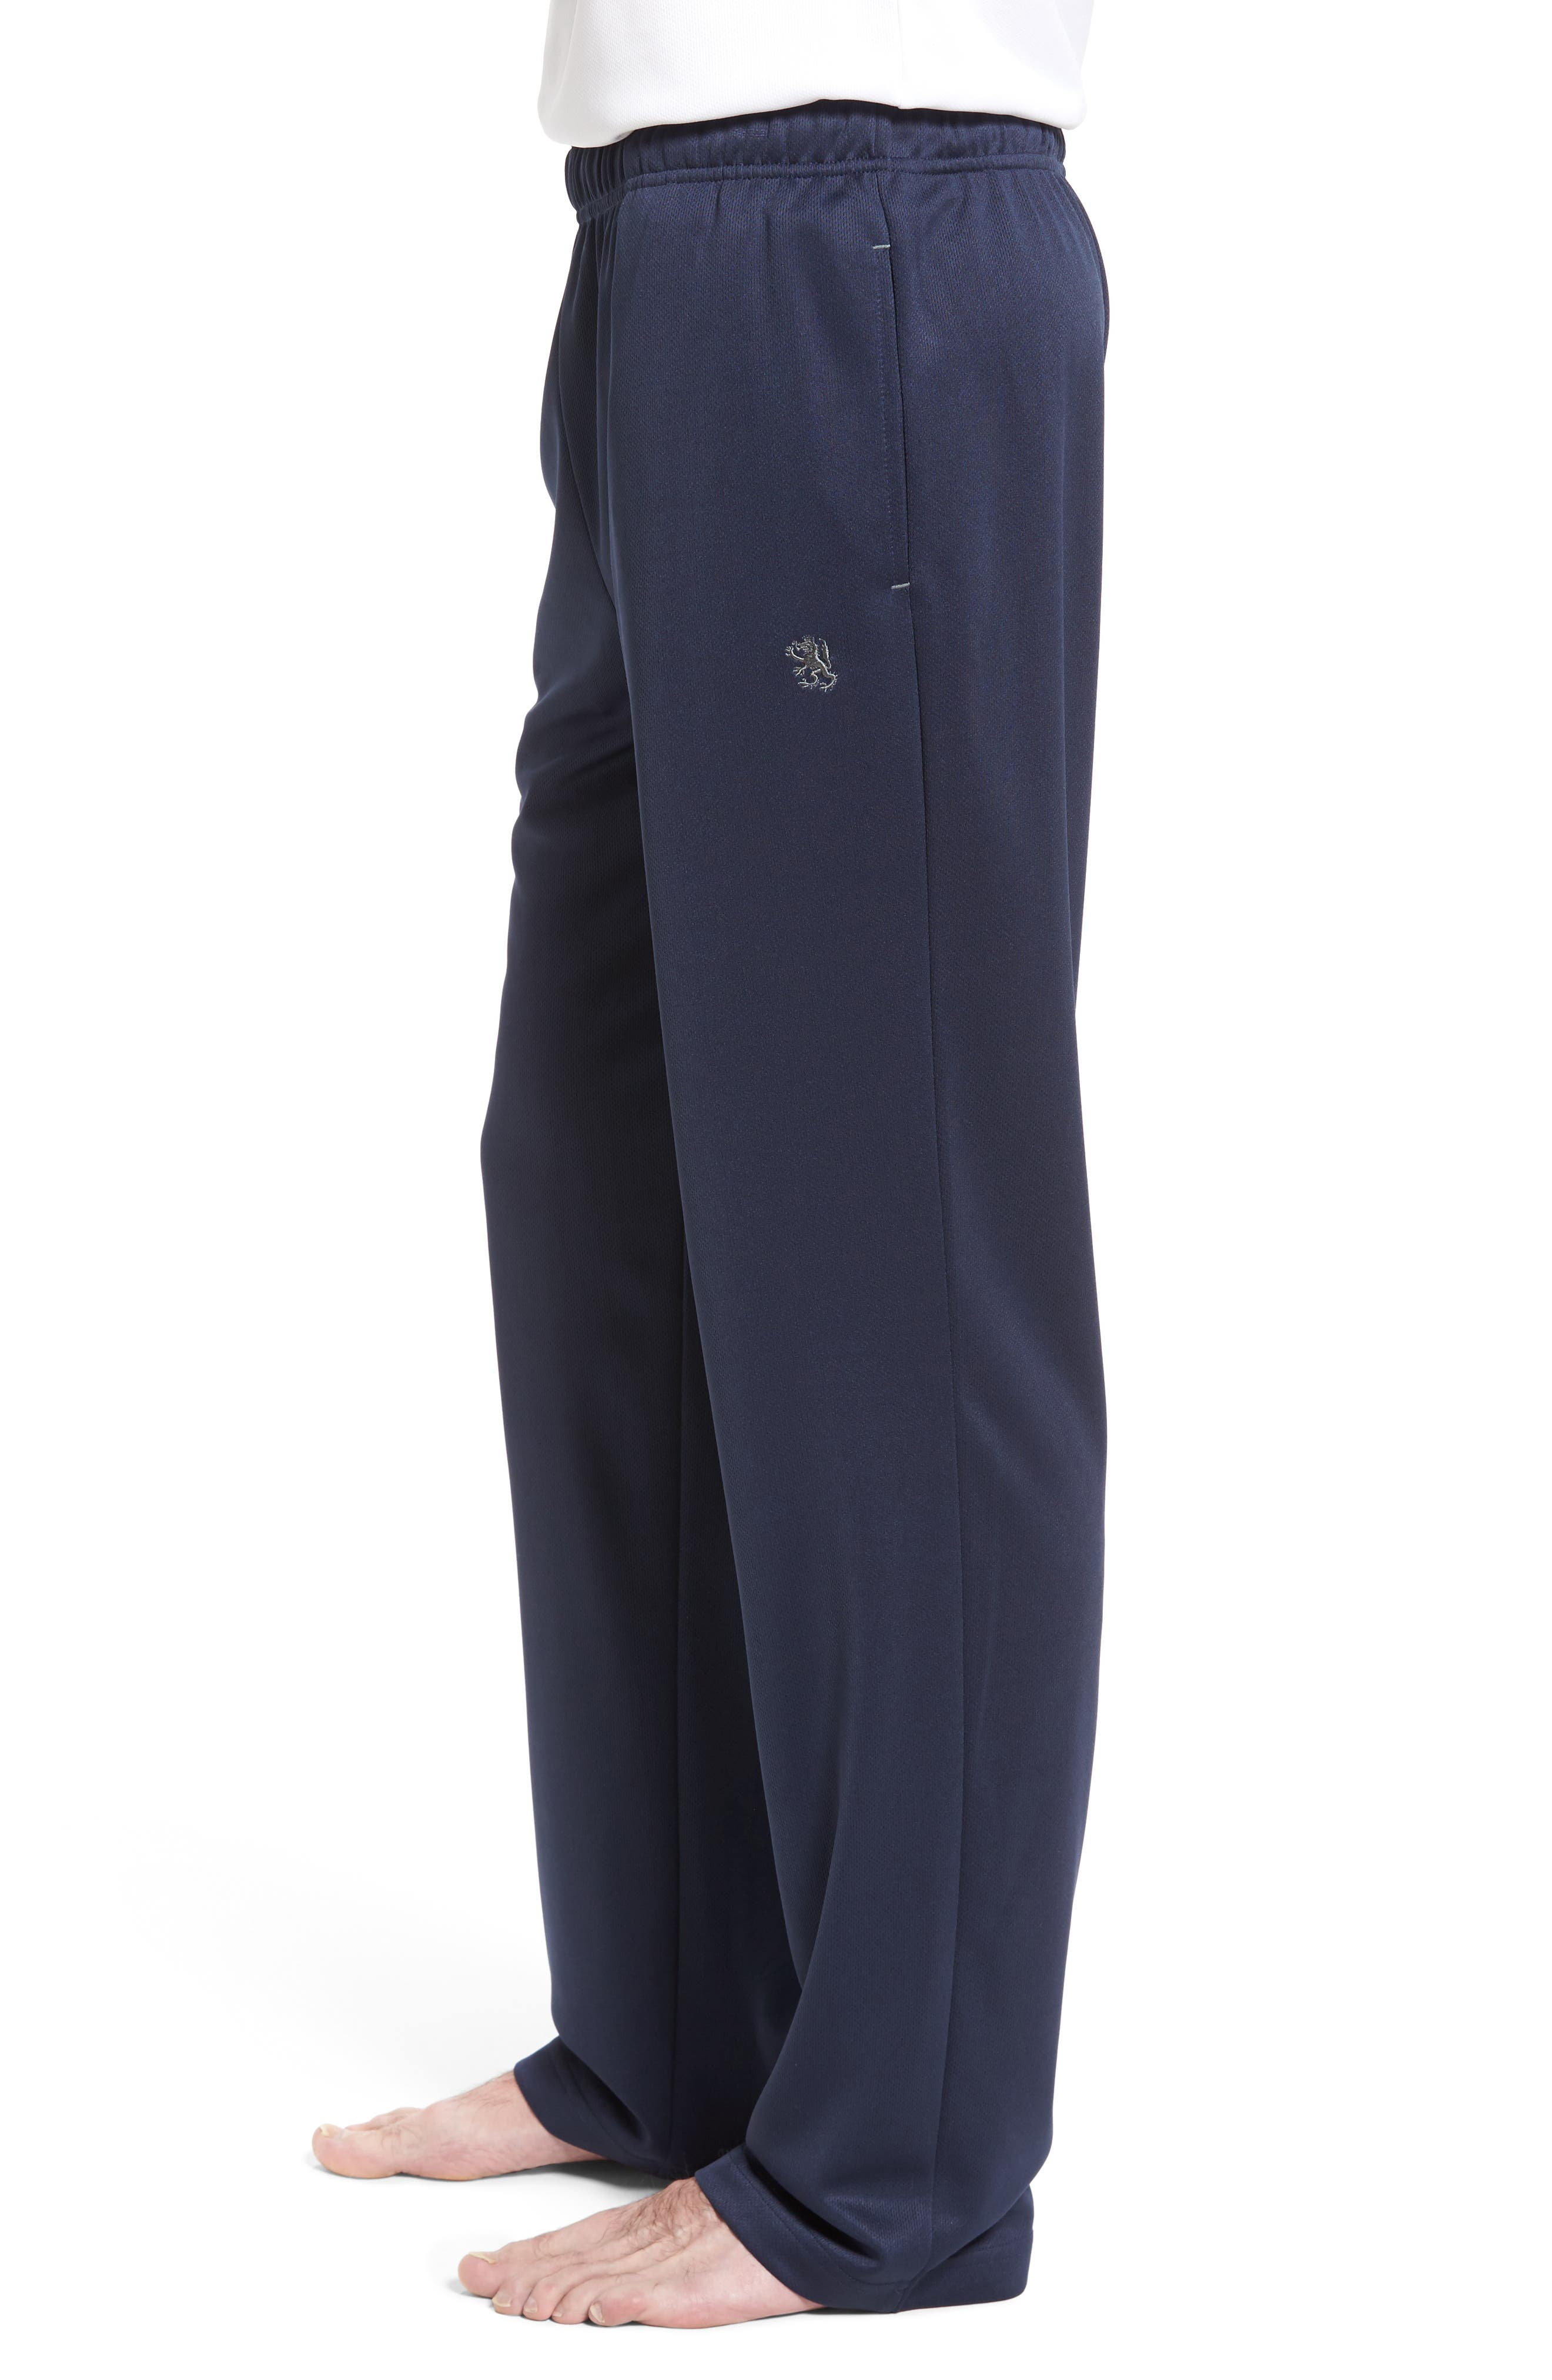 Work Out Lounge Pants,                             Alternate thumbnail 3, color,                             Navy